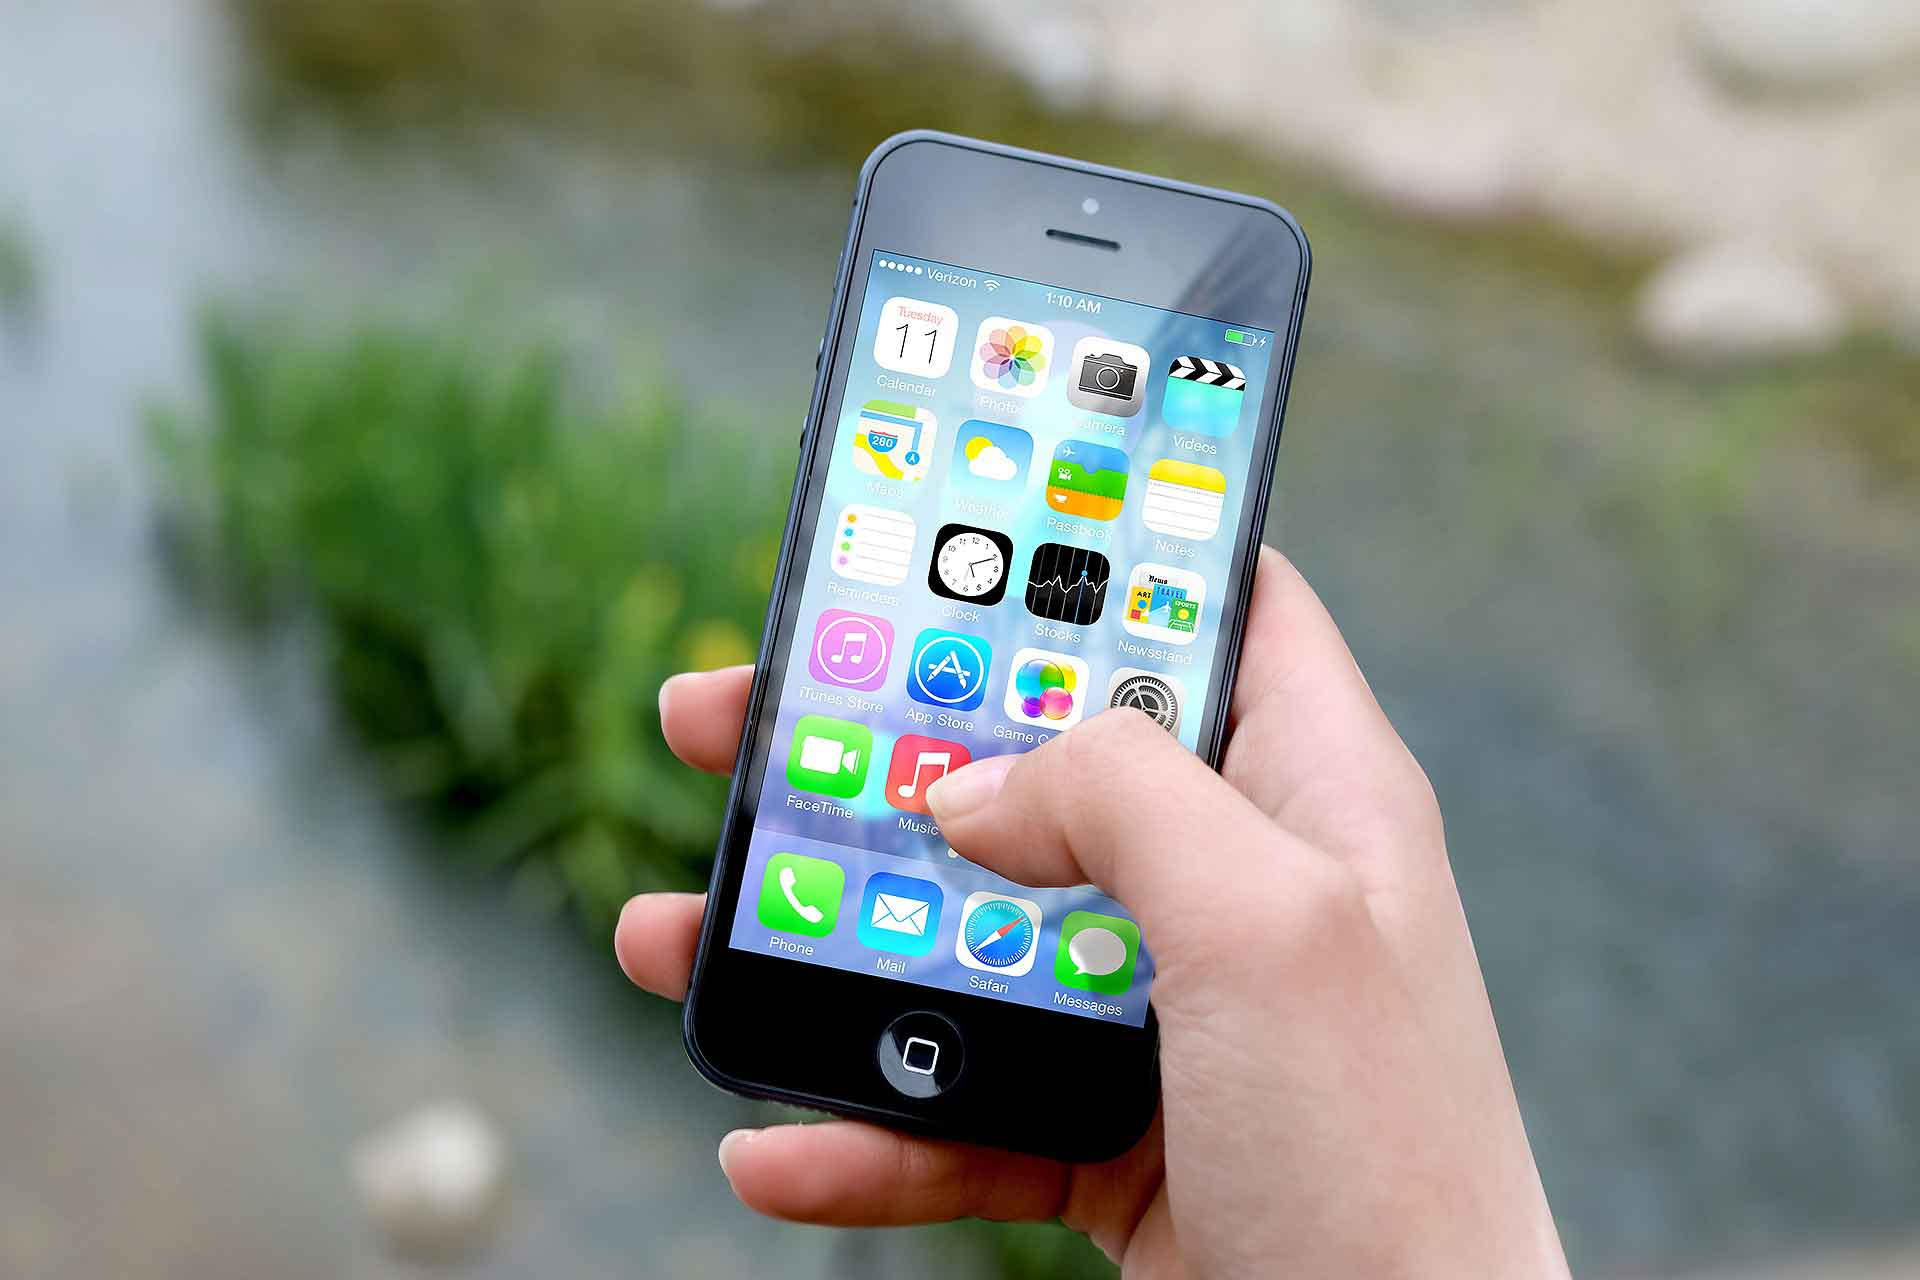 How To Recover Deleted Text Messages On The iPhone